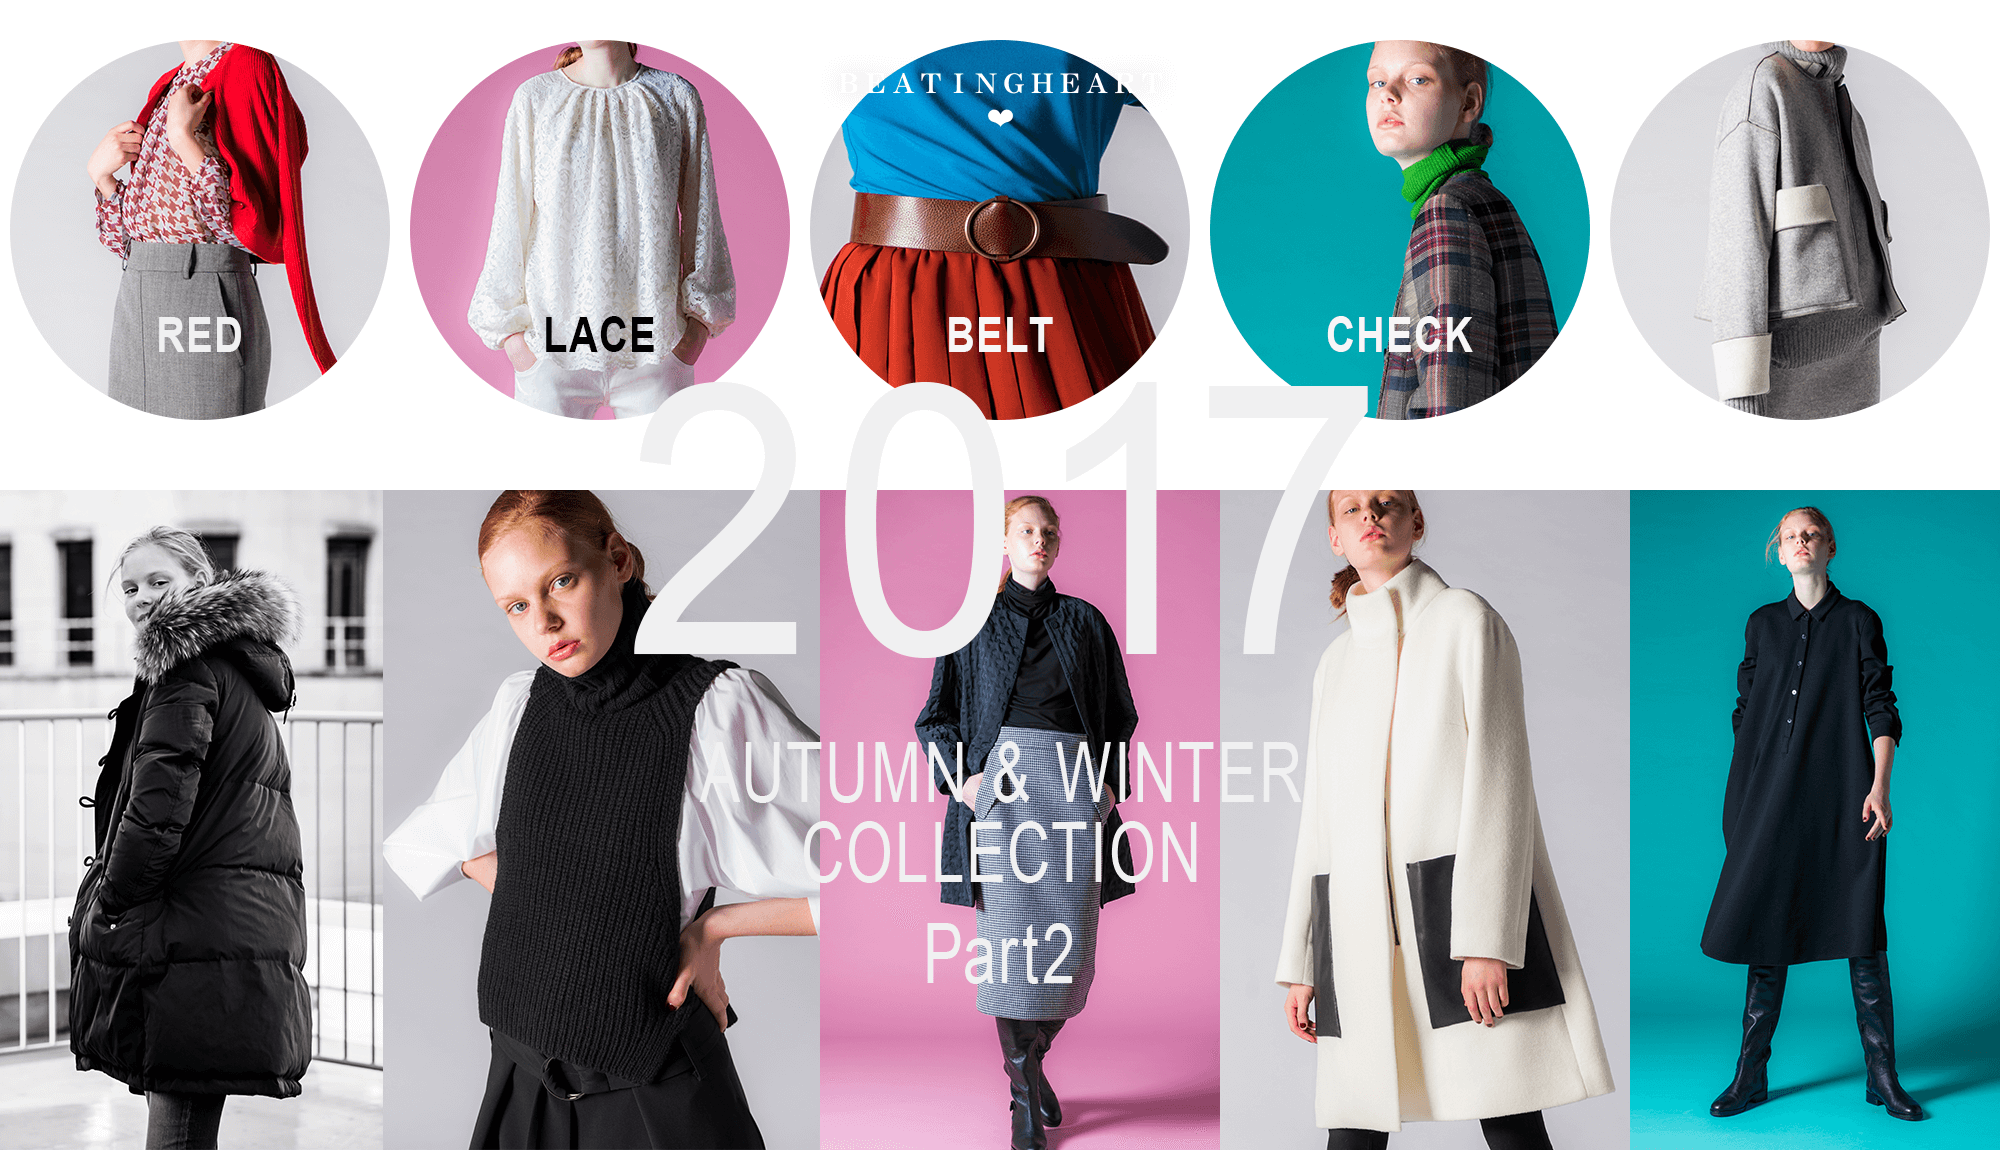 BEATING HEART 2017 AUTUMN & WINTER Collection Part2